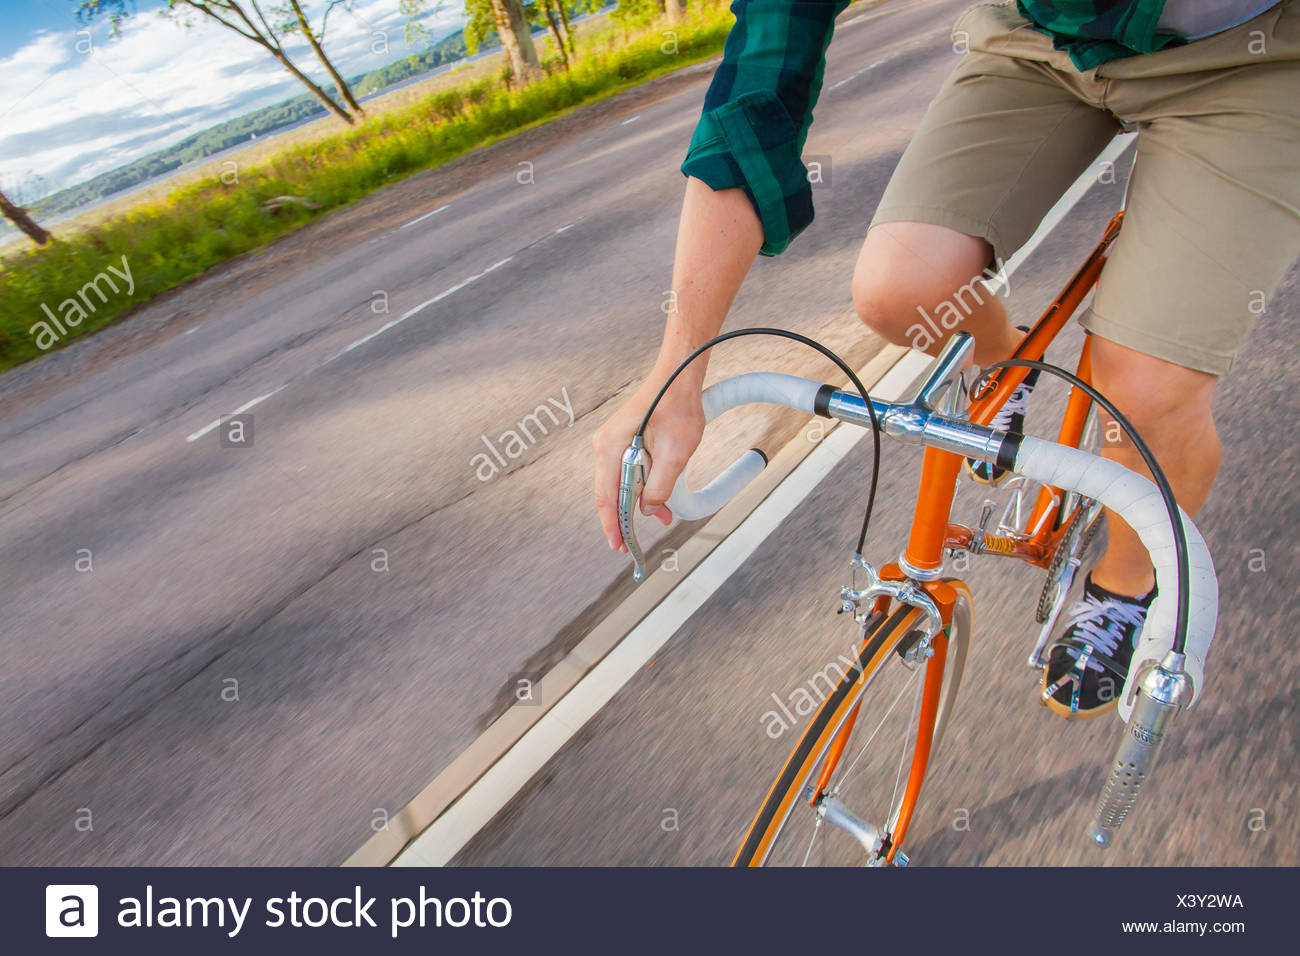 Sweden, Vastergotland, Lerum, Man cycling - Stock Image